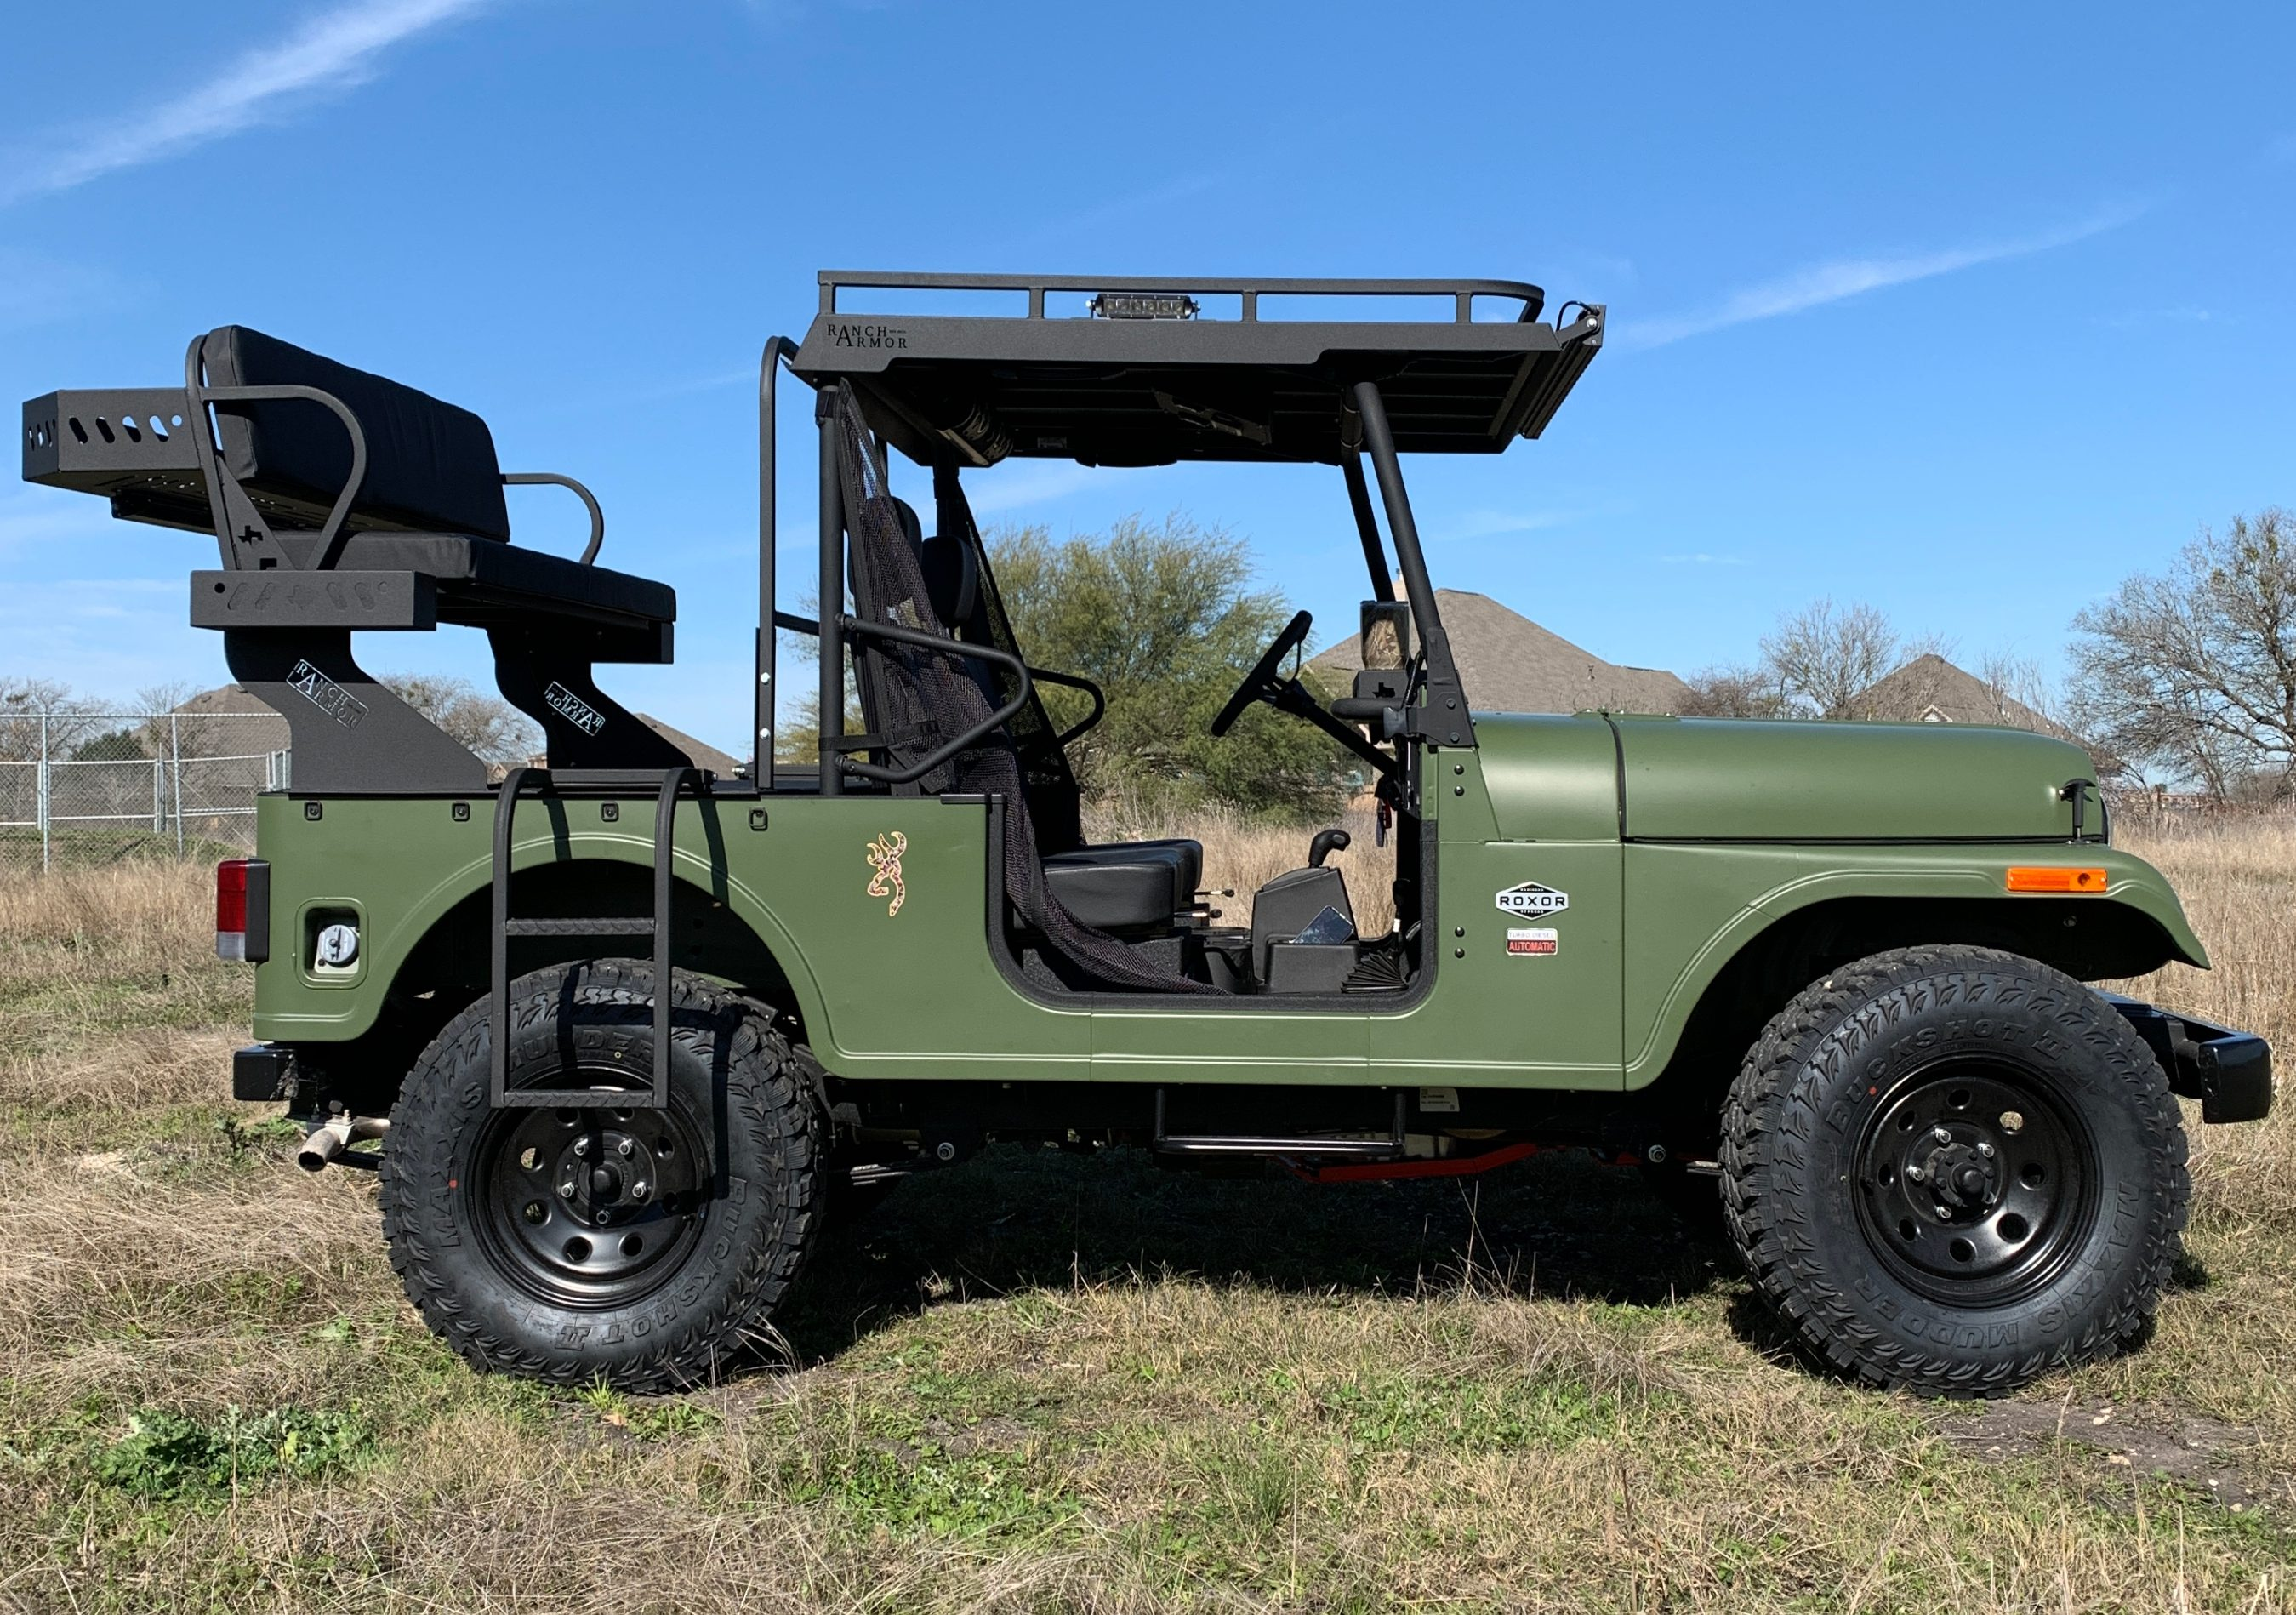 mahindra-roxor-outfit-ranch-armor-metal-top-high-seat-and-front-dash-box.jpg